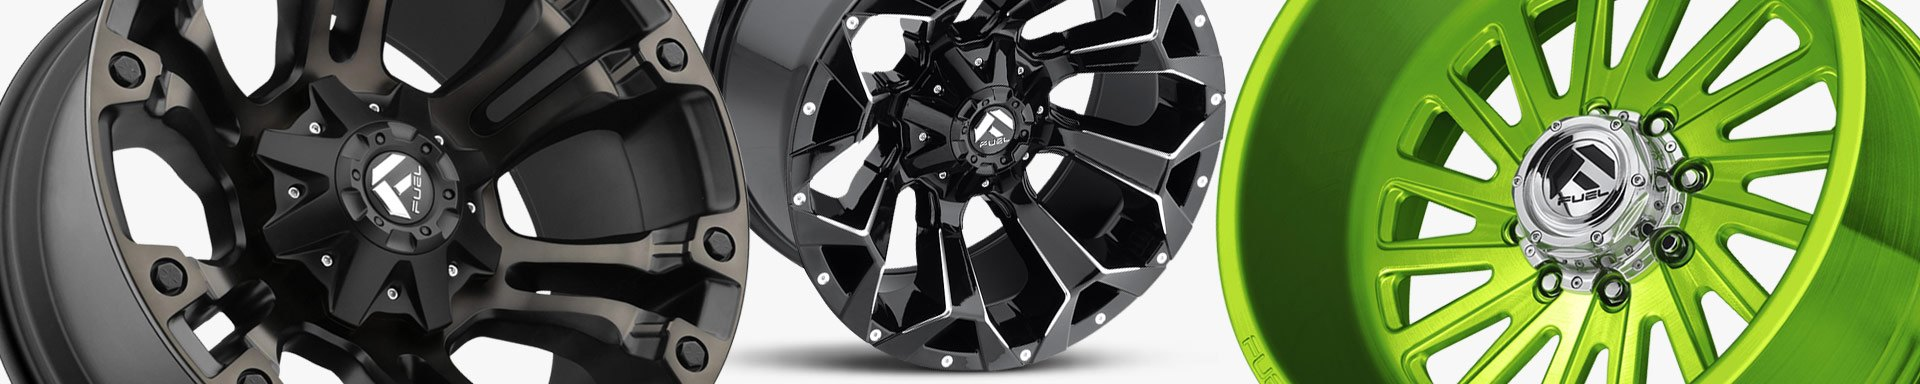 Universal Fuel WHEELS & RIMS